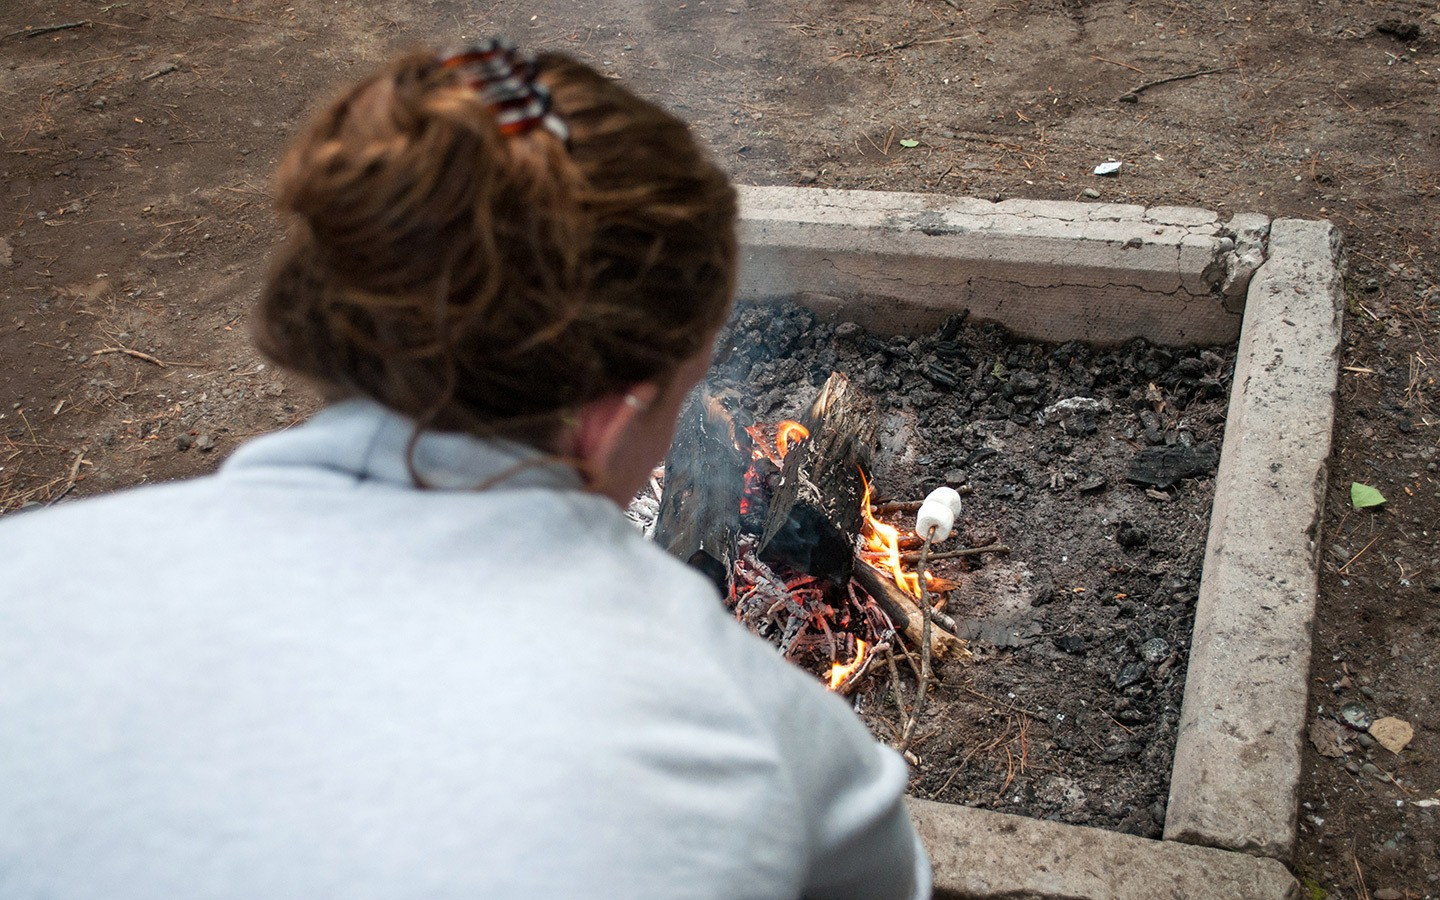 Toasting marshmallows on the campfire on a RV trip across Canada